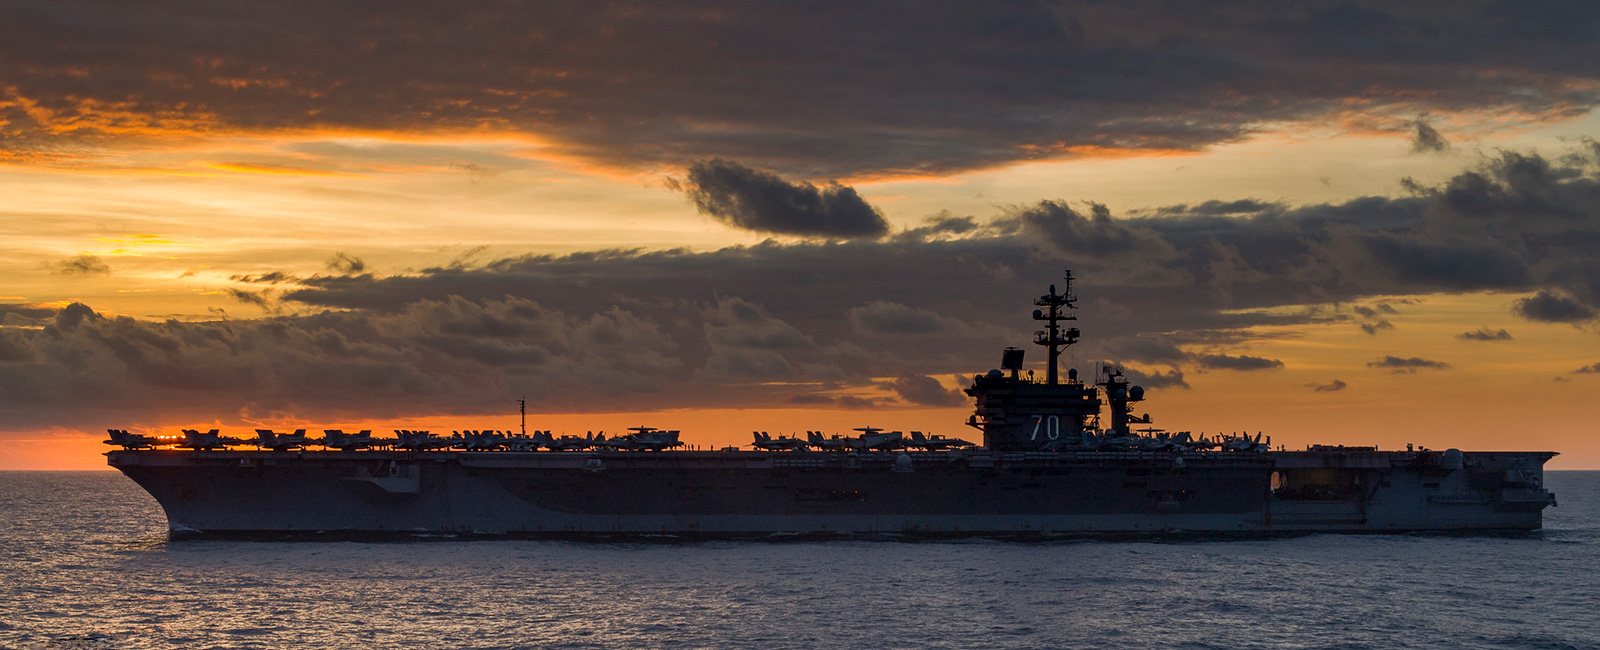 The Nimitz-class aircraft carrier USS Carl Vinson (CVN 70) transits the South China Sea.